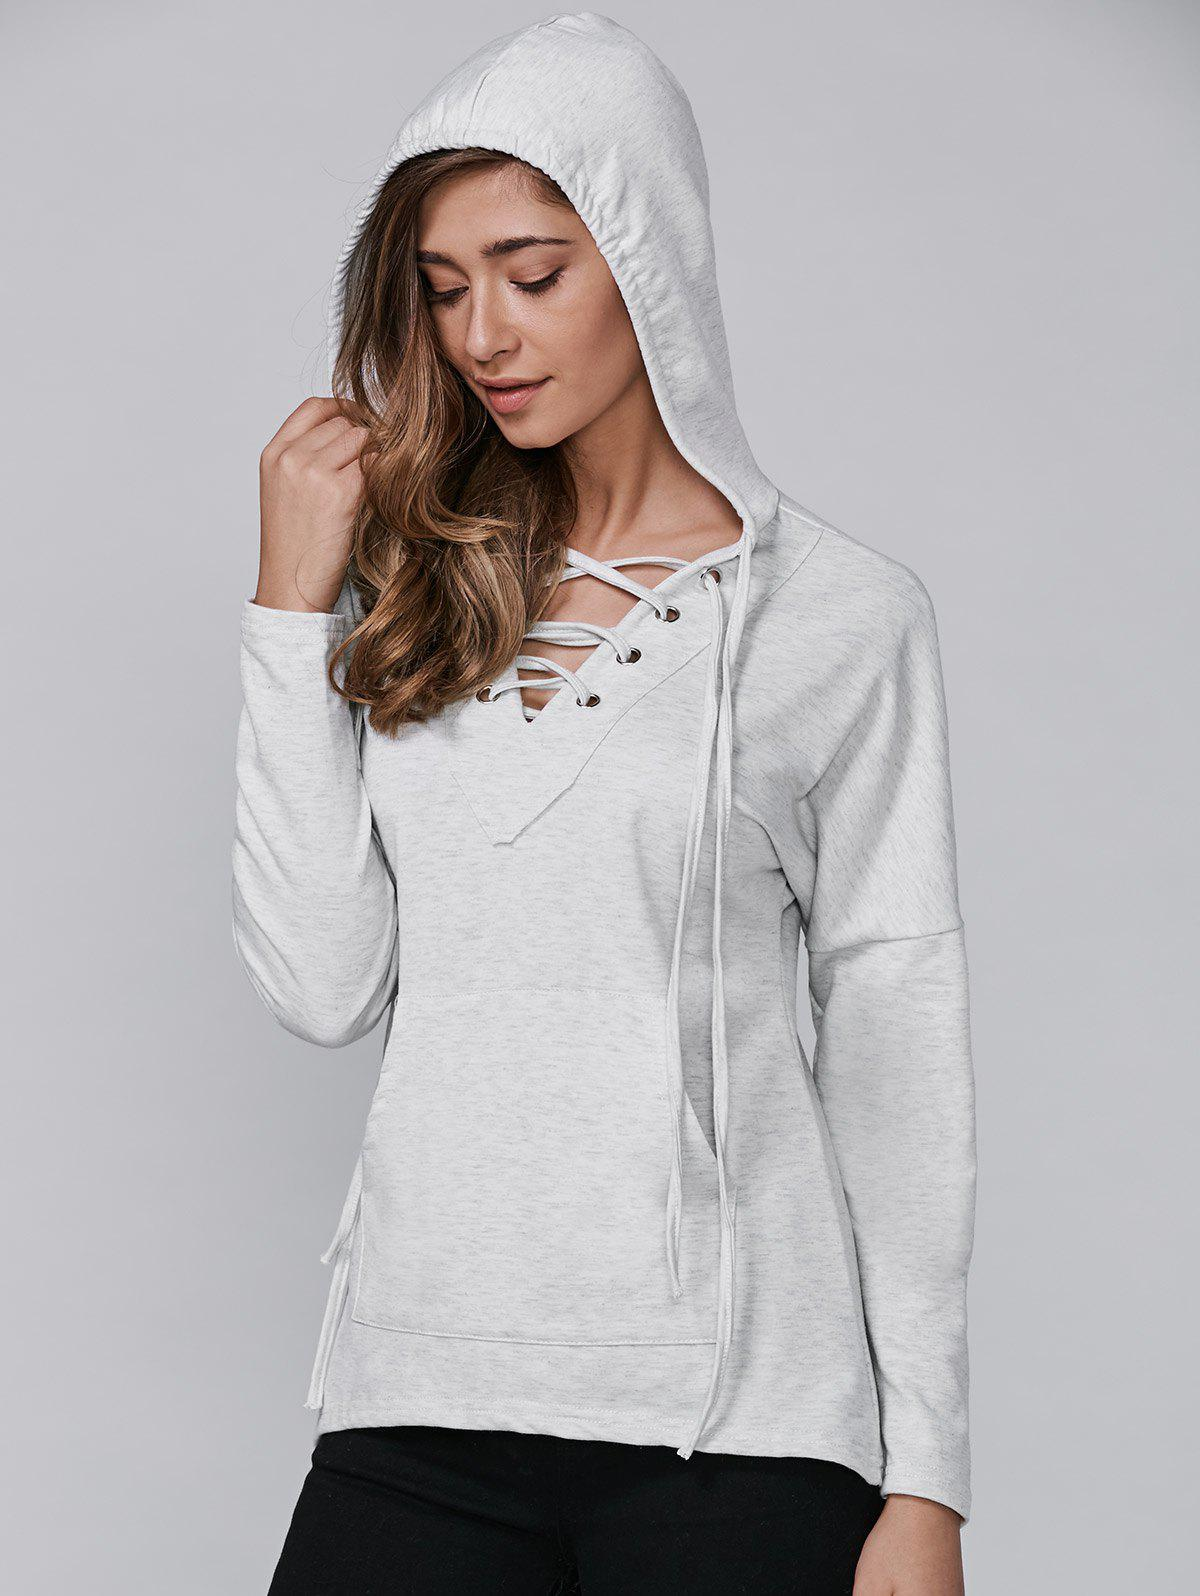 Long Sleeve Hooded Lace-Up Pocket T-Shirt - GRAY L